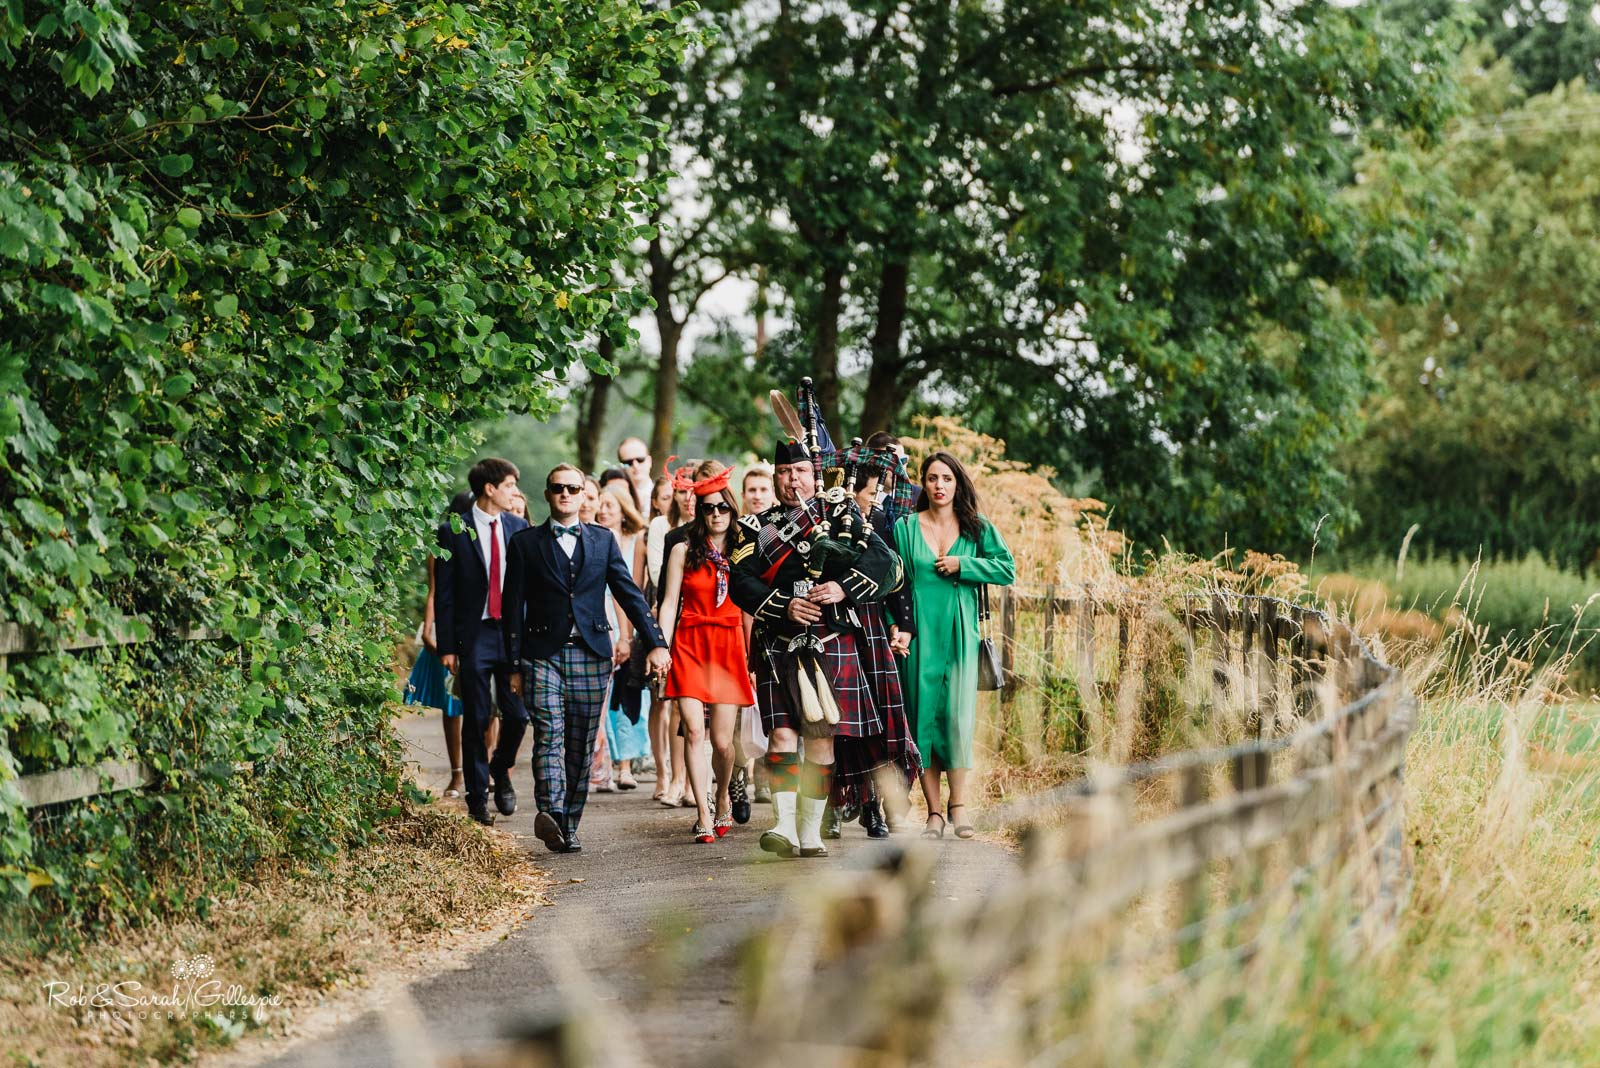 Wedding guests arrive at St Giles church Packwood accompanied by piper